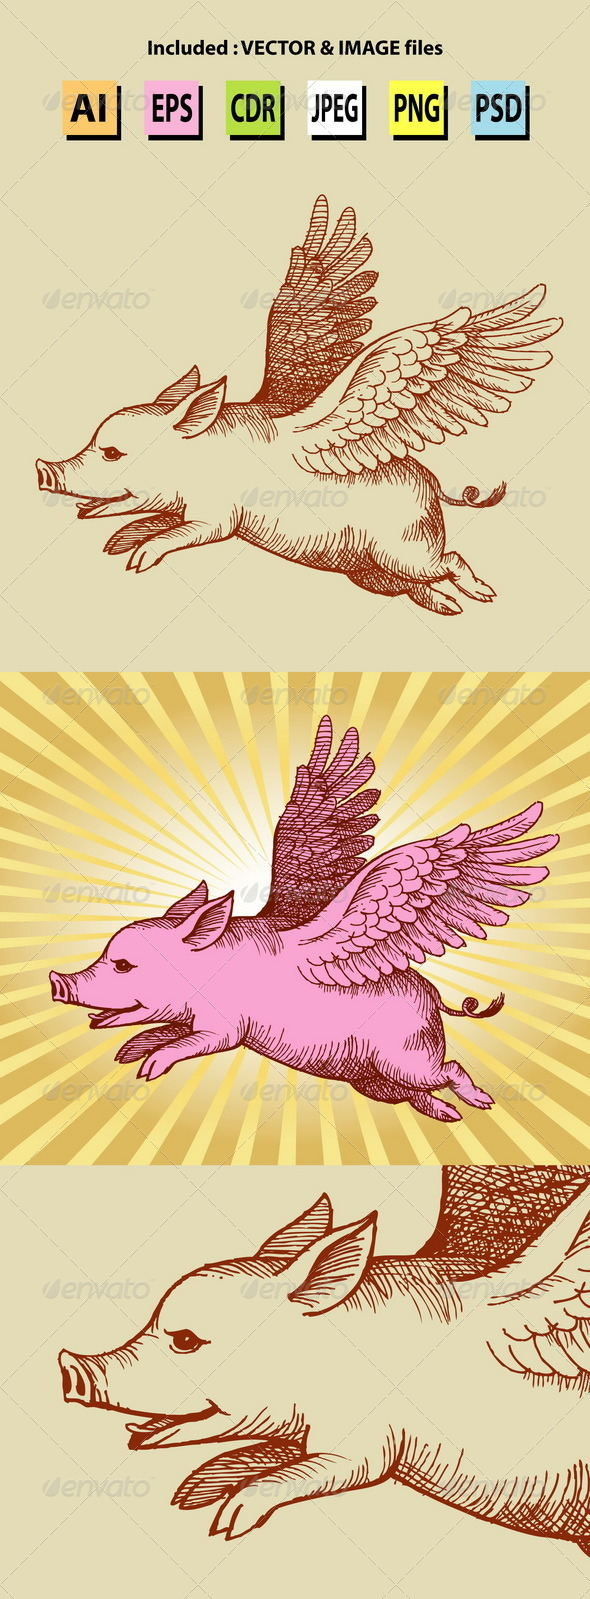 GraphicRiver Angel Pig Illustration 5594508